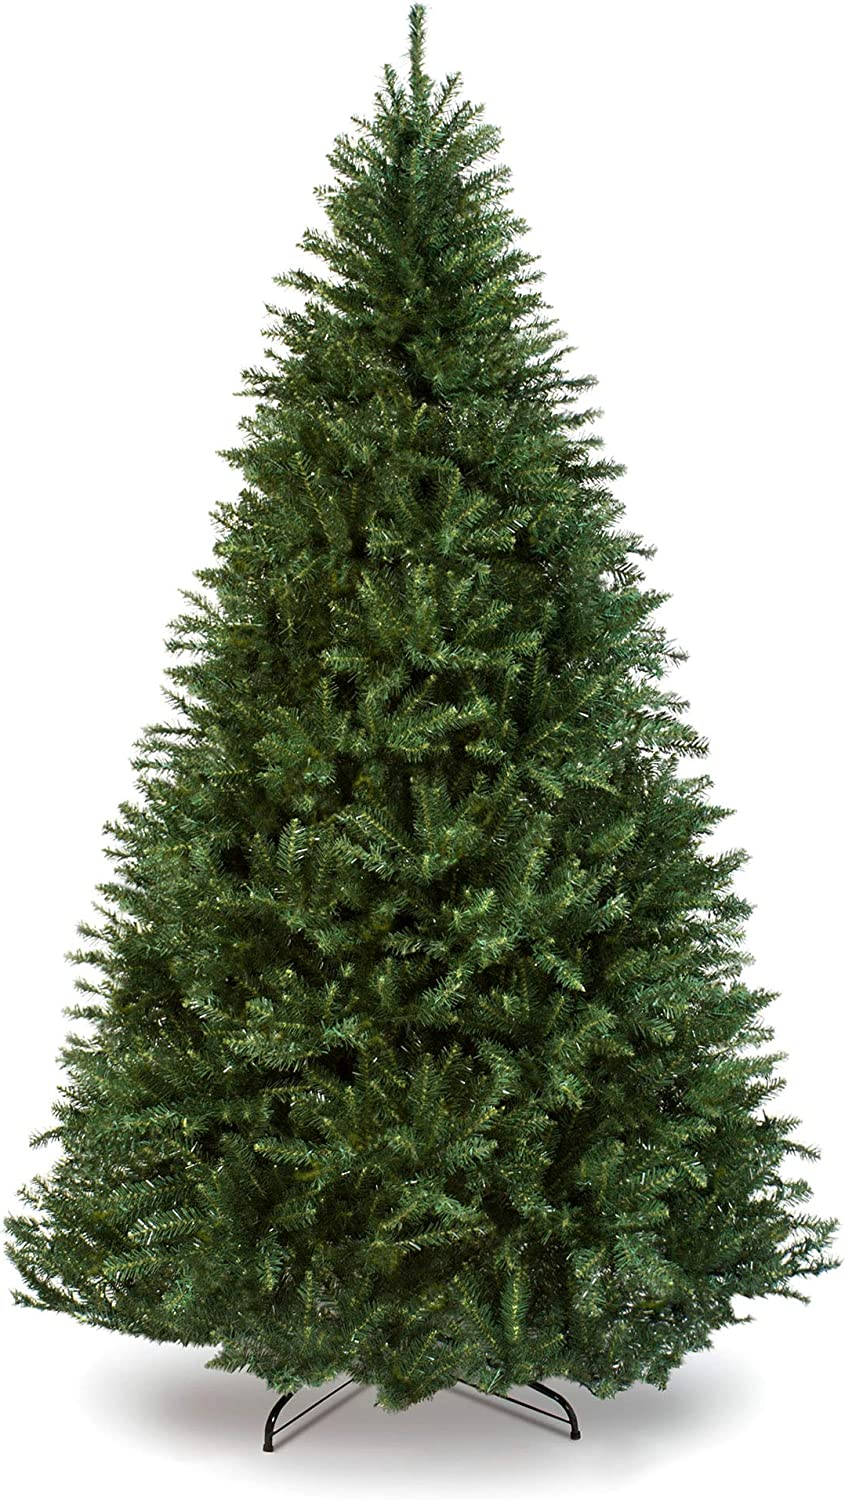 Best Choice Products 6ft Hinged Douglas Full Fir Artificial Christmas Tree Holiday Decoration w/ 1,355 Branch Tips, Easy Assembly, Foldable Metal Stand, Green